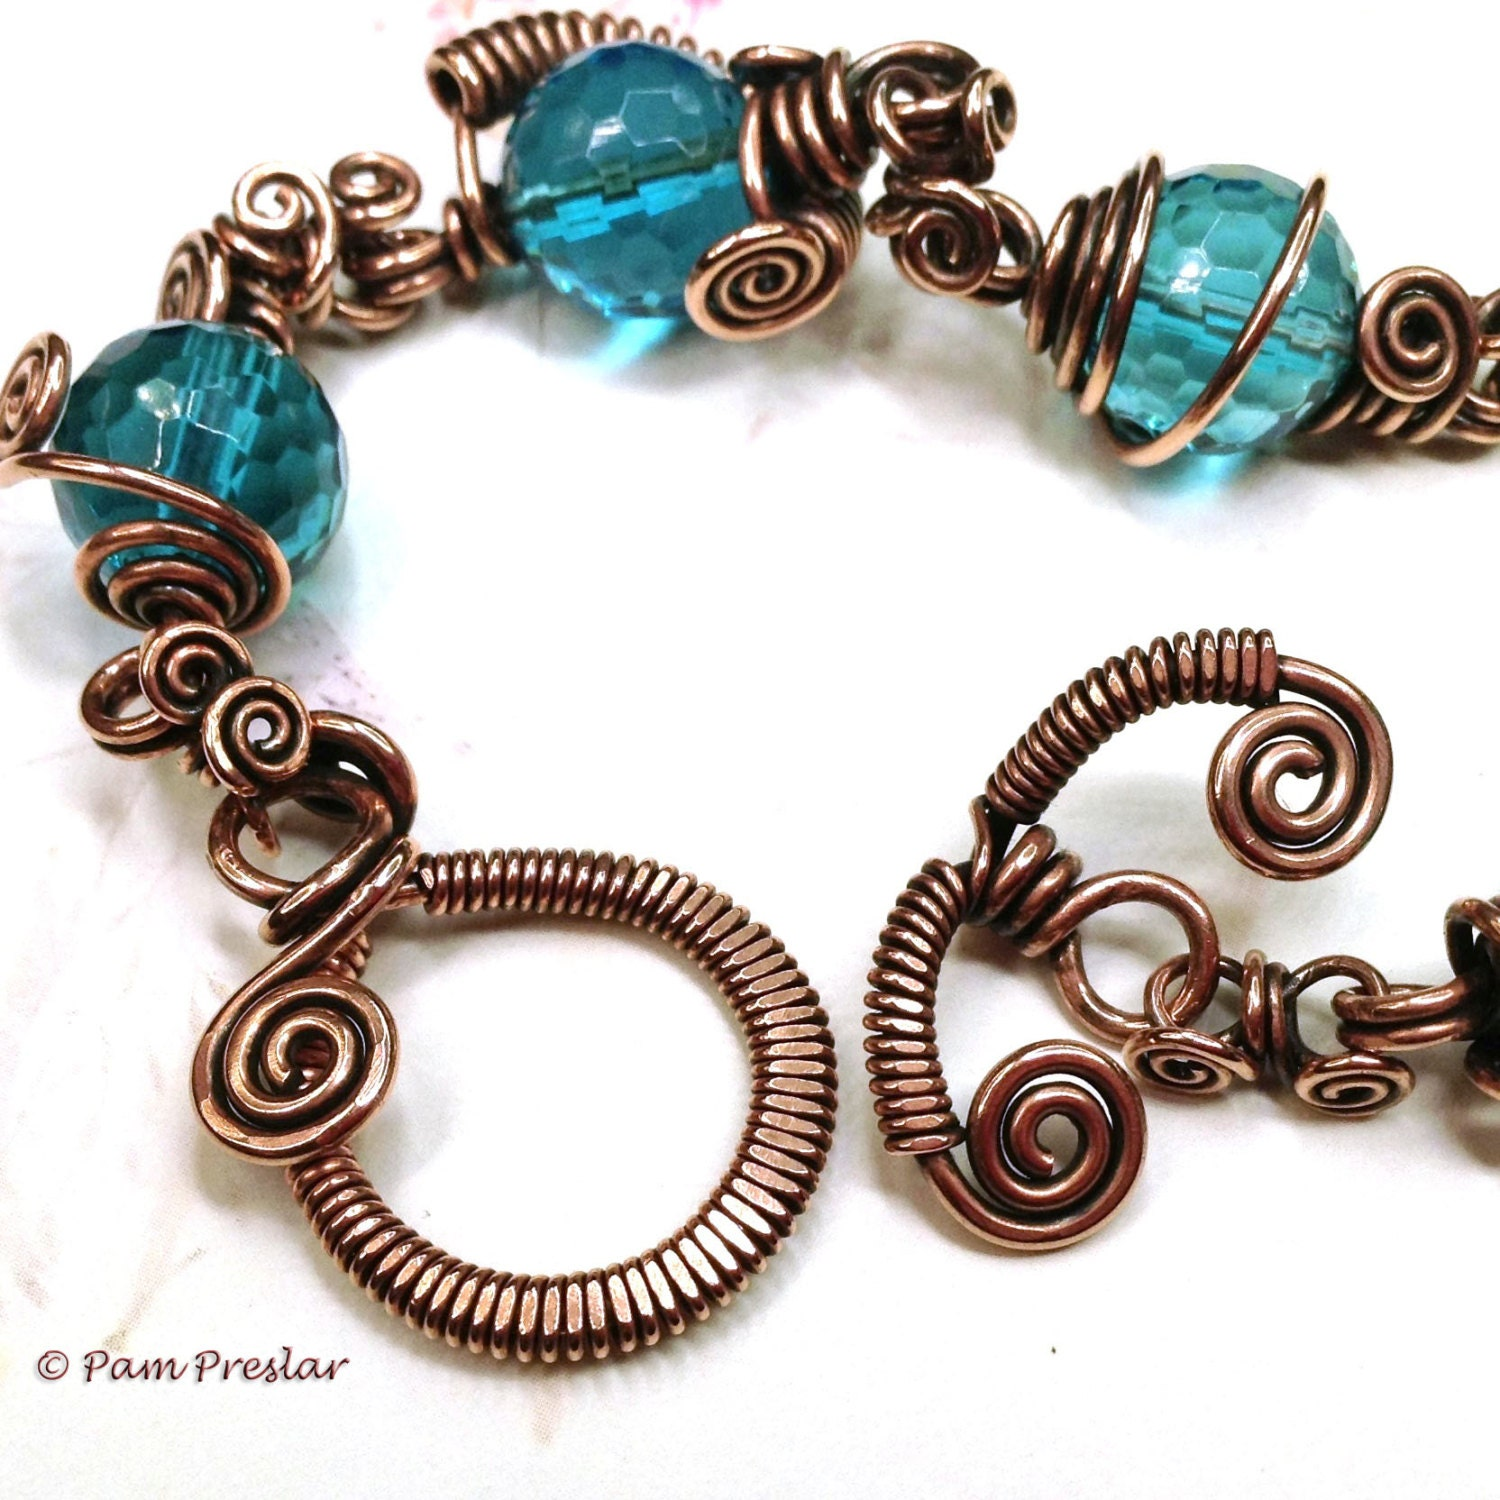 TUTORIAL Wrapped Toggle Clasp Wire Jewelry Making Tutorial